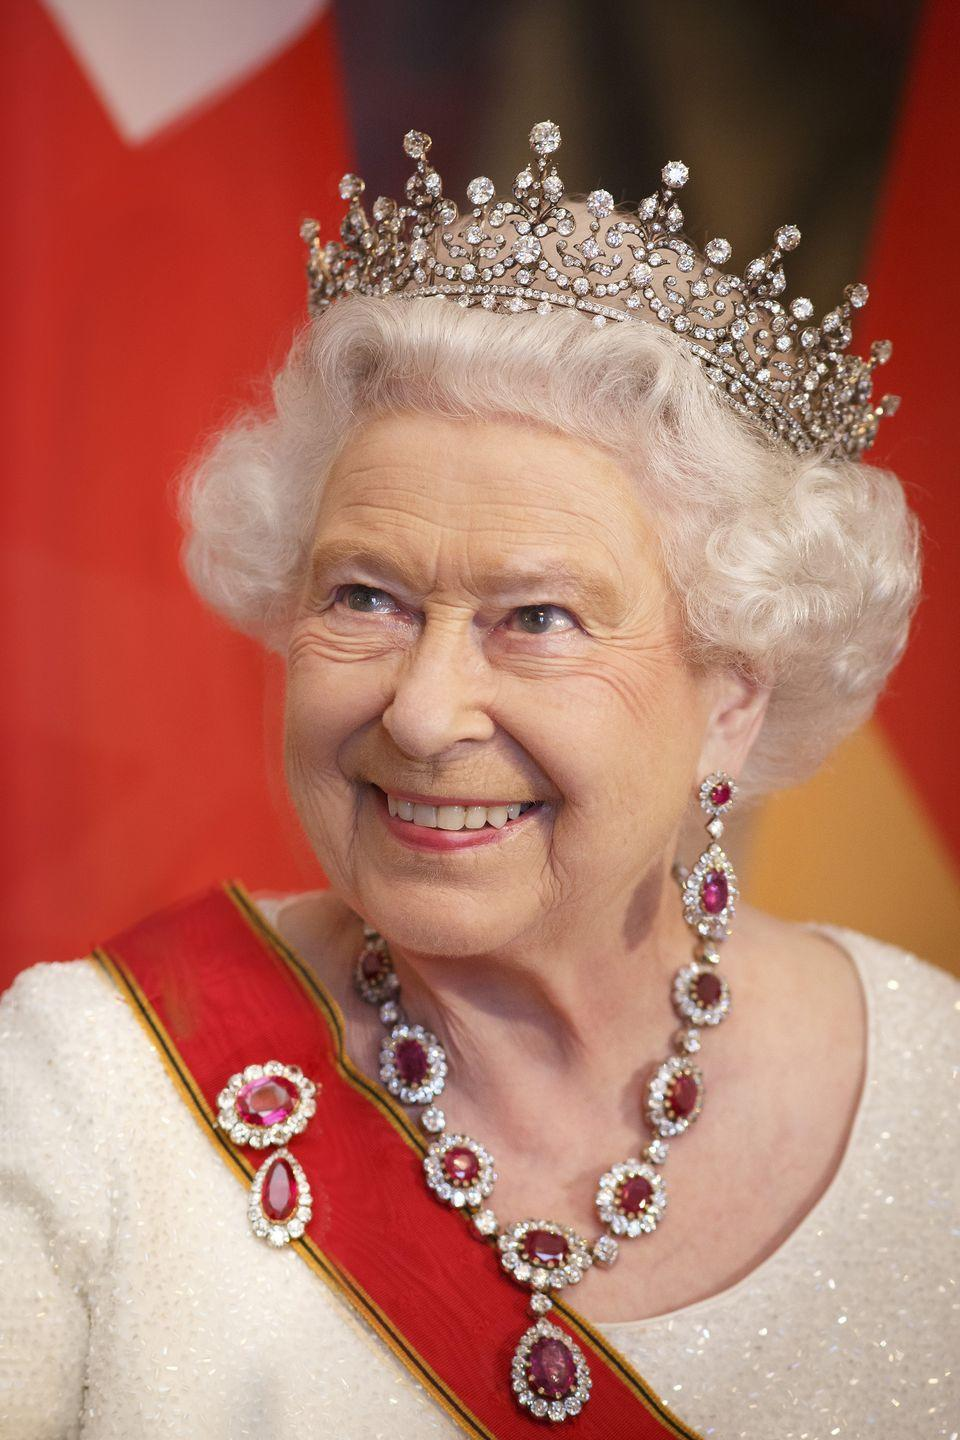 <p>The Girls of Great Britain and Ireland tiara is the headpiece most frequently worn by the Queen–it's even featured in her portrait on British currency. The tiara was a wedding gift from her grandmother, Queen Mary, and the first she owned herself. The tiara was originally a wedding gift for Mary when she married the Duke of York, who later became George V, in 1893. It was from the girls of Great Britain and Ireland, and commissioned by a committee lead by her friend, Lady Eve Greville.</p>